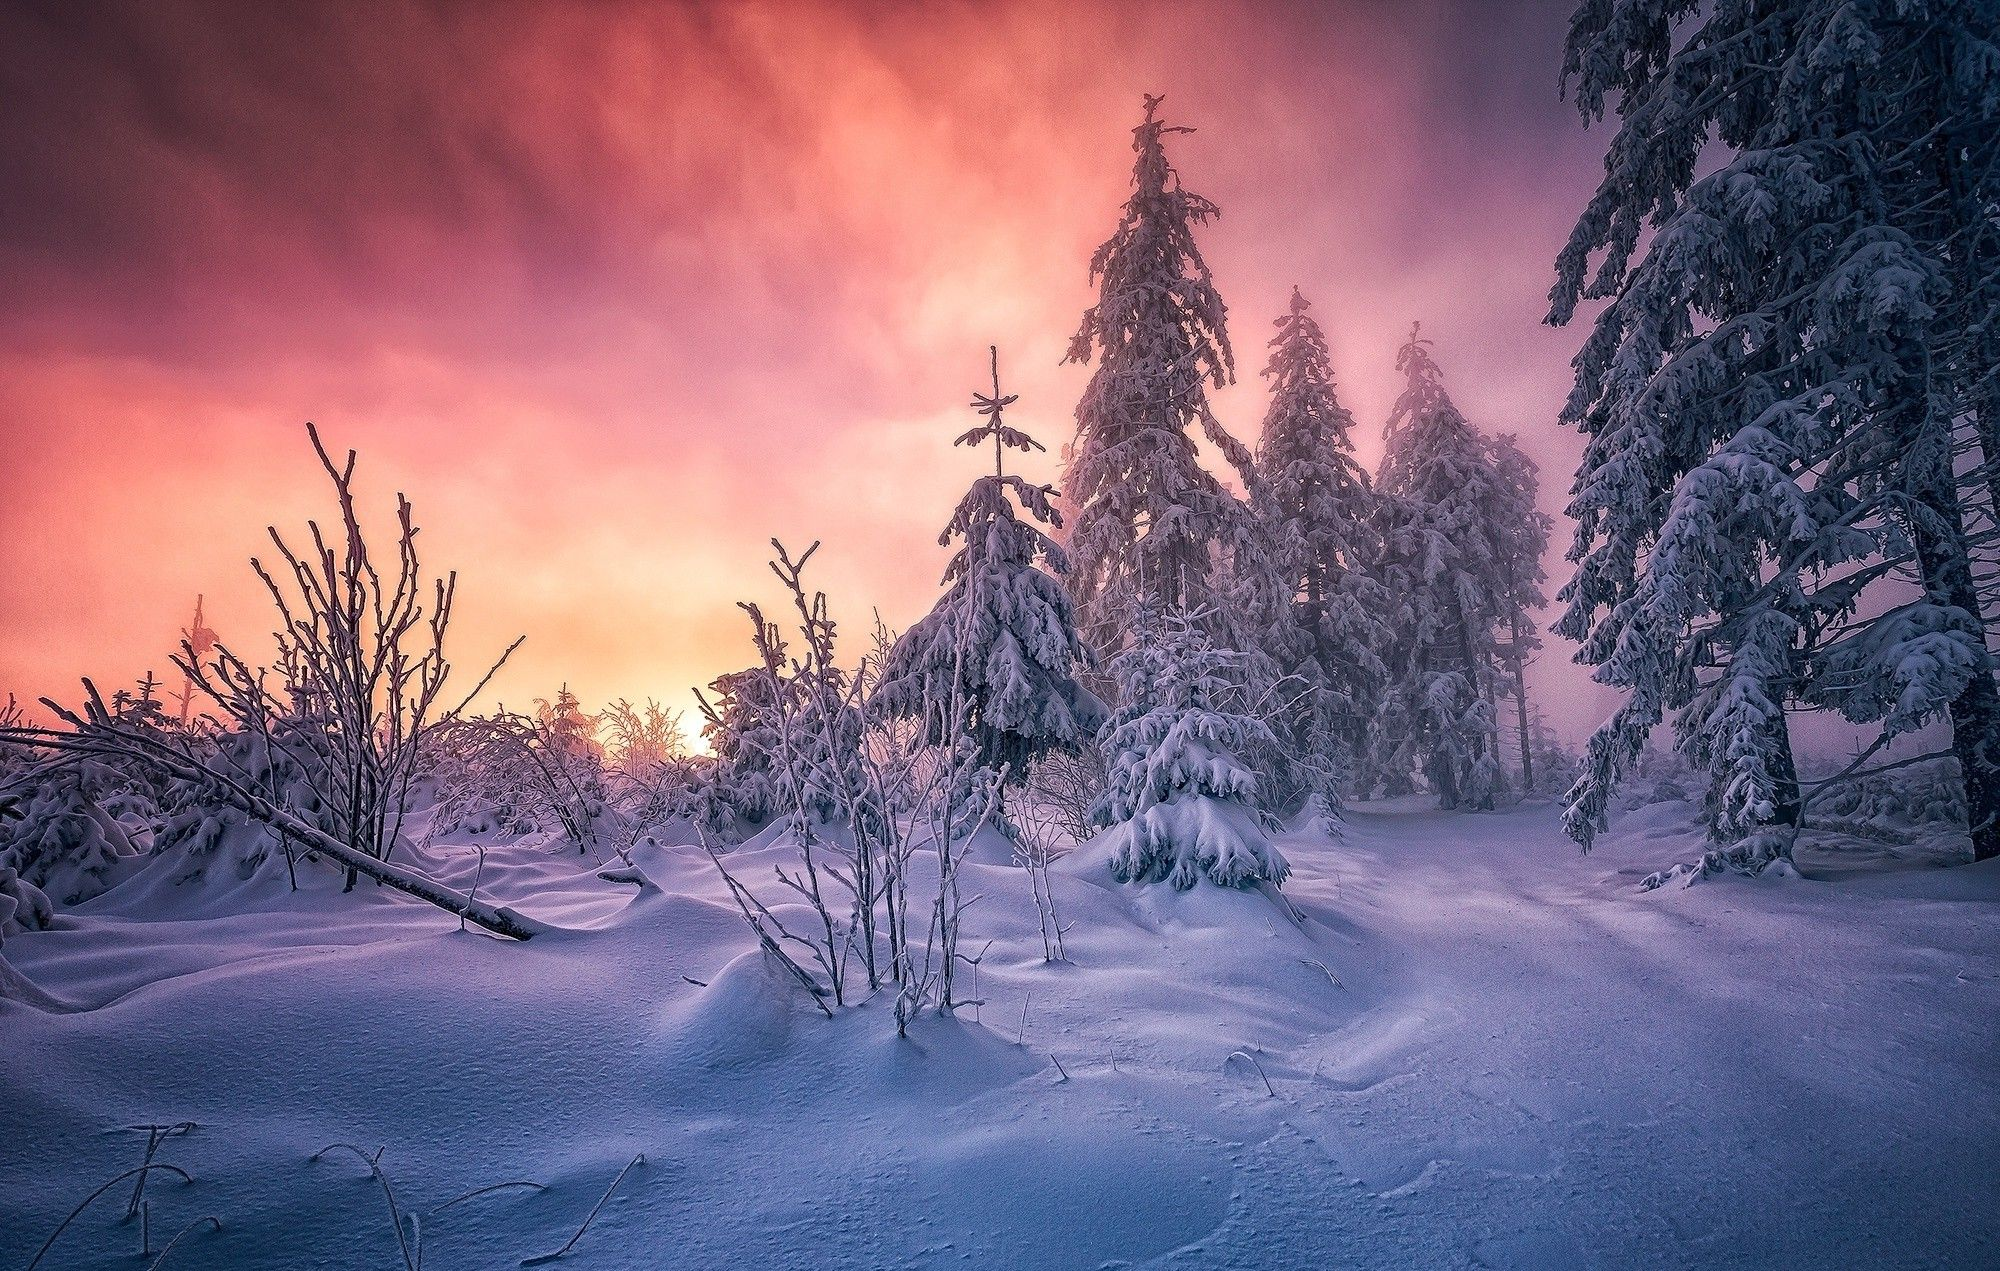 Forest Winter Sunrise Germany Snow Trees Cold Clouds Path White Yellow Pink Nature Landscape Wallpaper Background Images Desktop Background Images